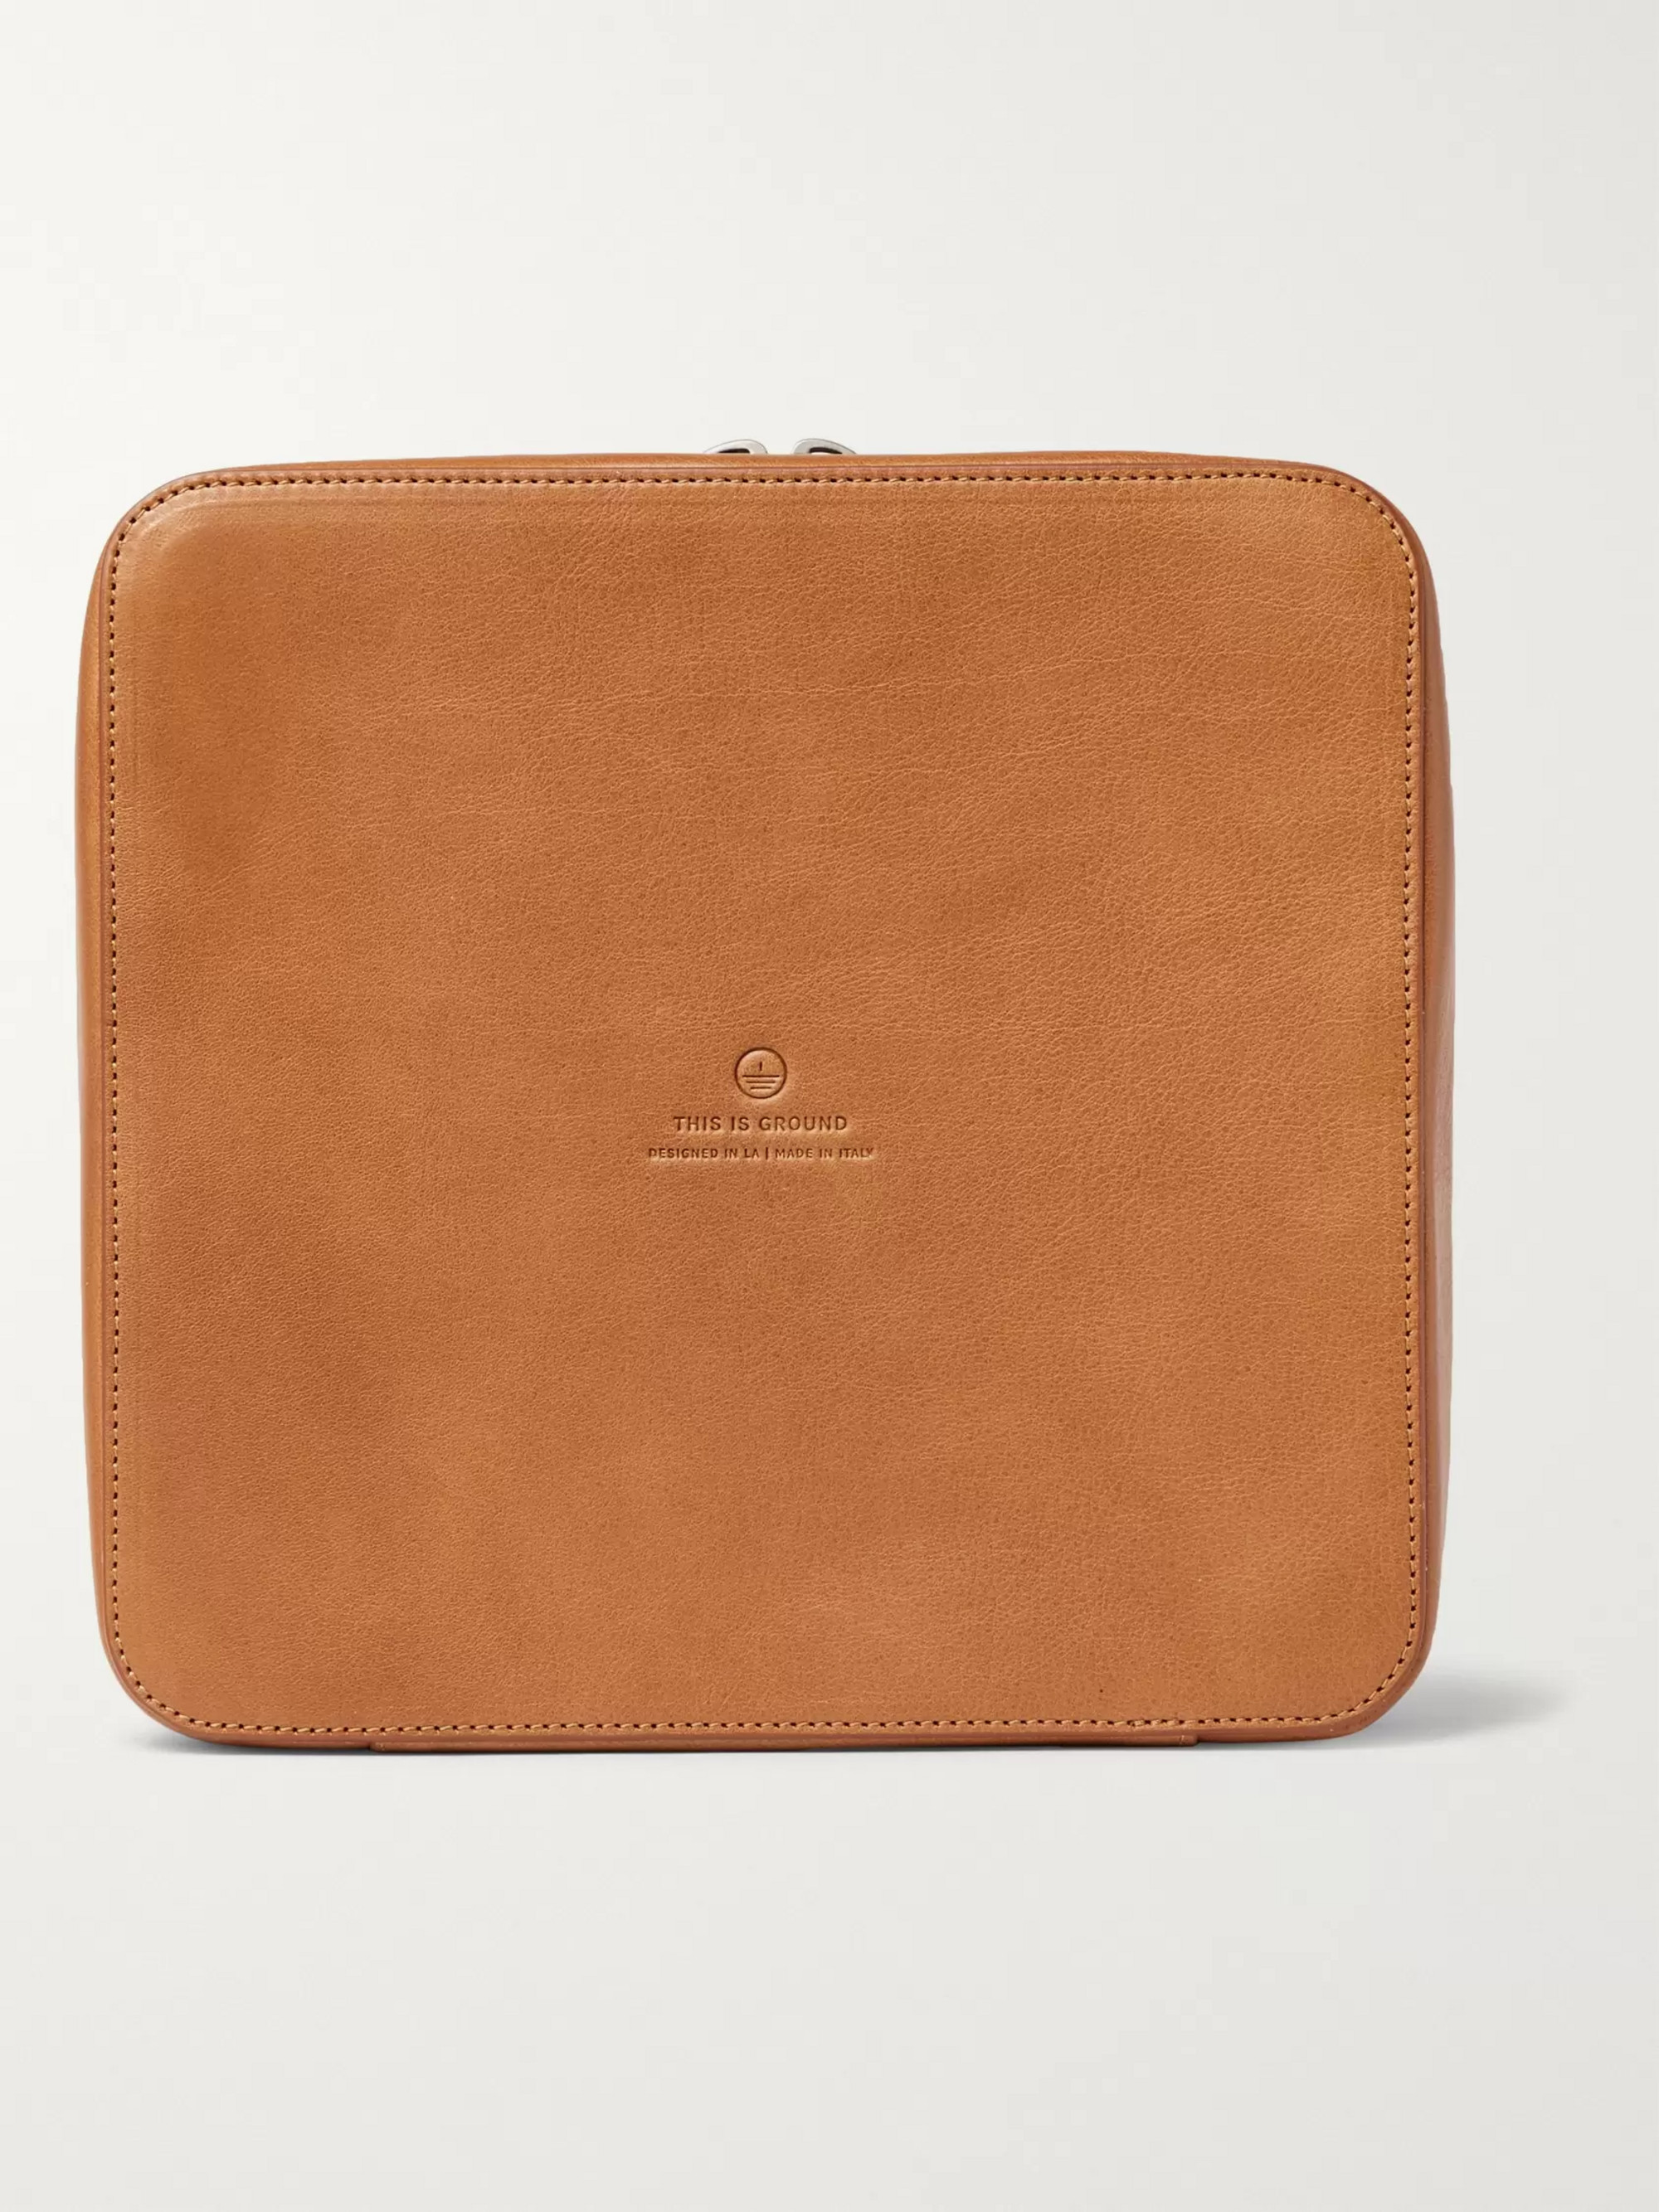 This Is Ground Grande Tech Dopp Kit Leather Travel Organiser